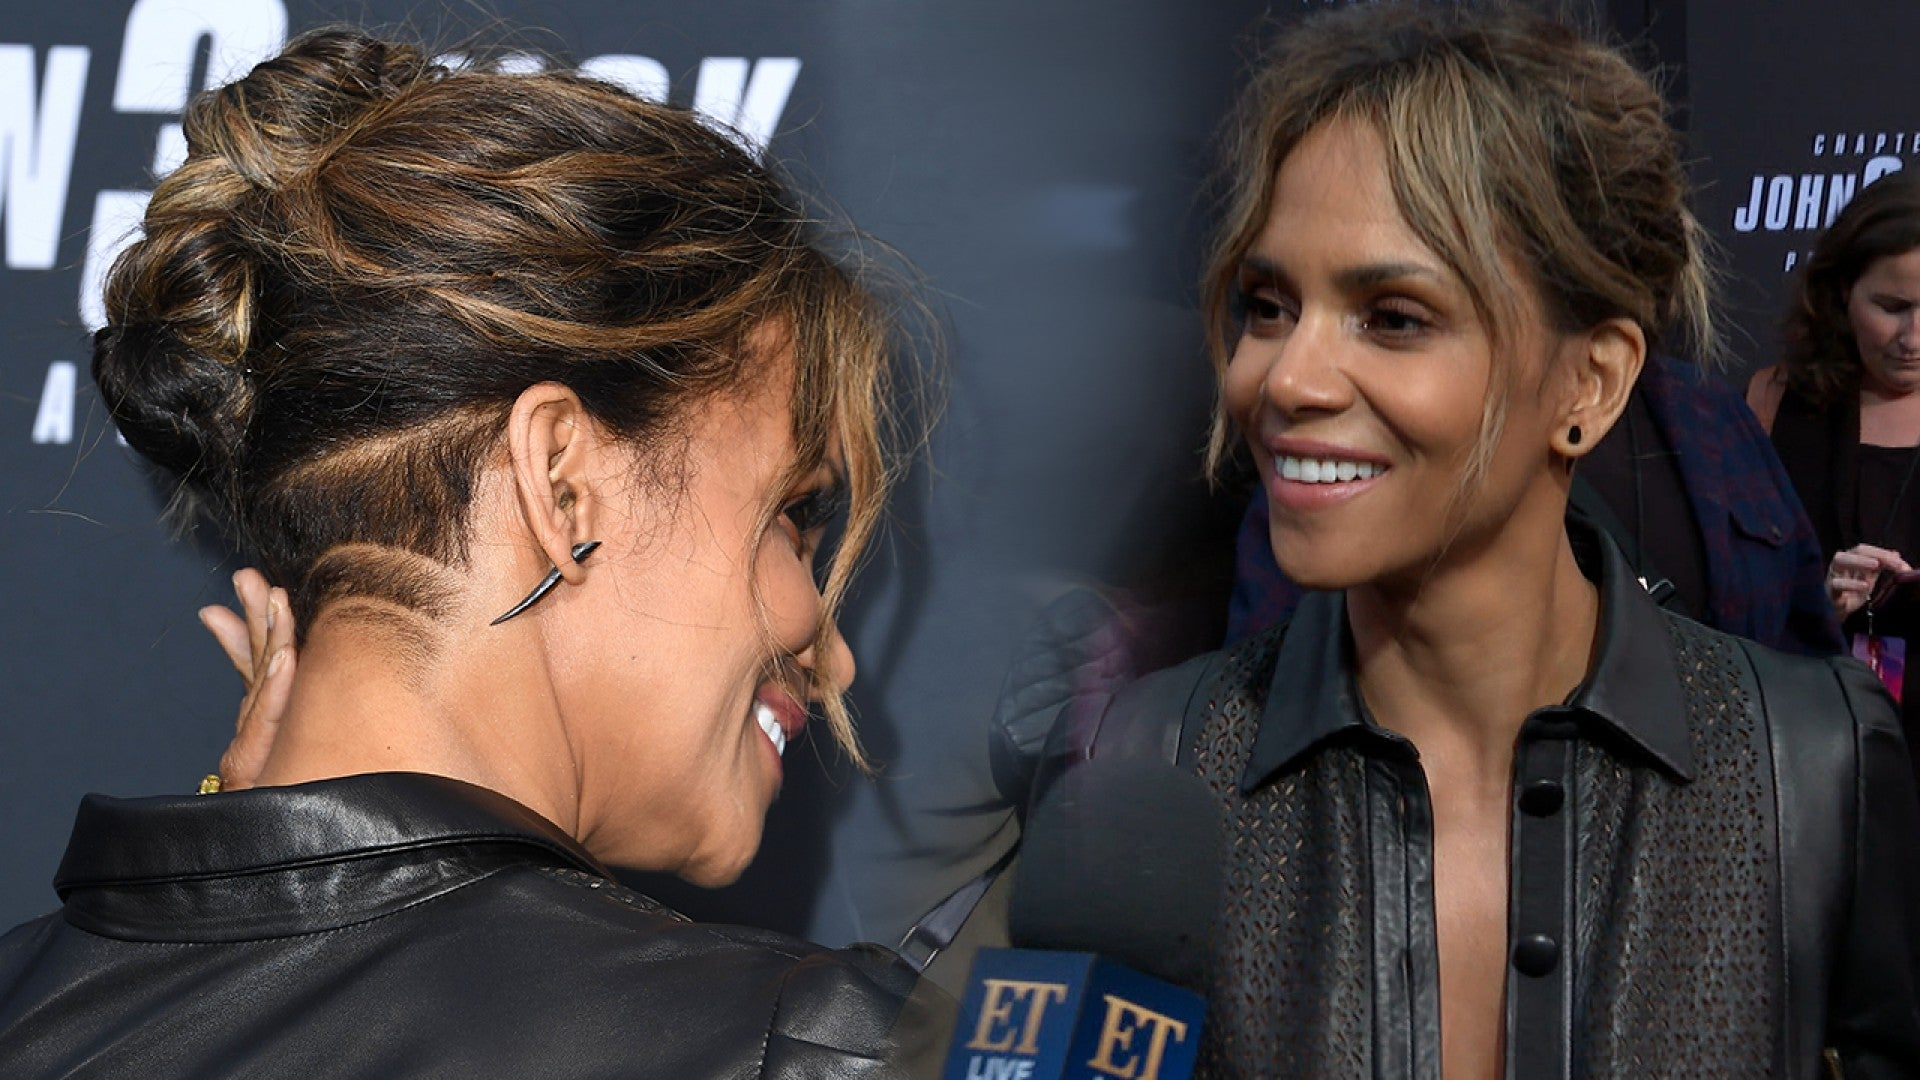 Halle Berry Debuts Buzzed Hairstyle While Talking About Being A Badass Role Model For Women Exclusive Entertainment Tonight